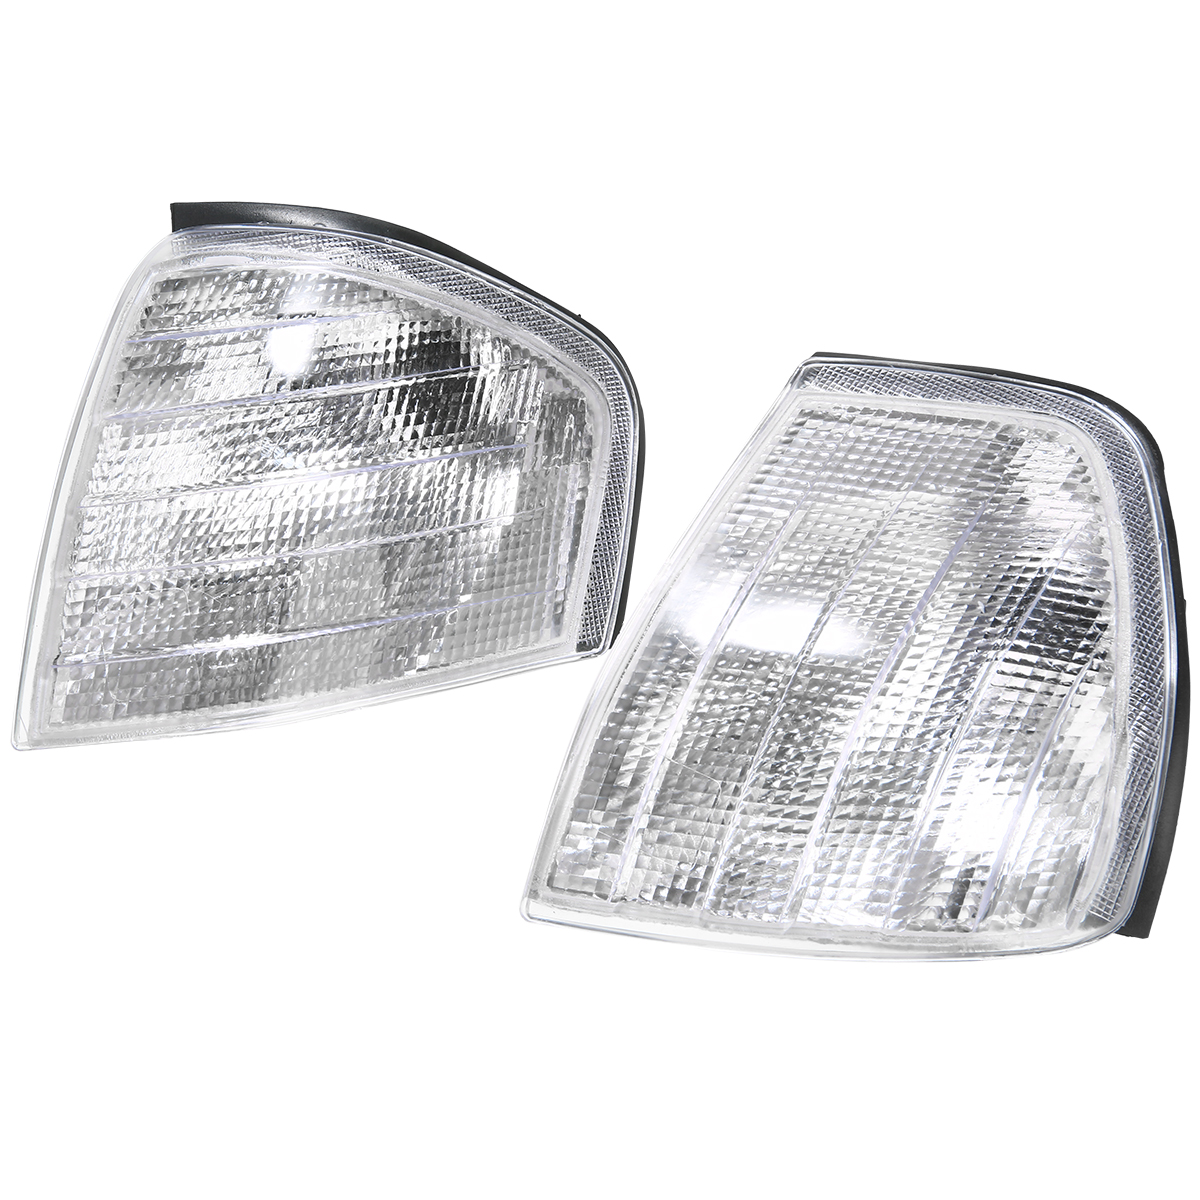 For <font><b>Mercedes</b></font> Benz C Class W202 1994 1995 <font><b>1996</b></font> 1997 1998 1999 2000 1 Pair Clear Turn Signal Corner Light Car Styling Signal Lamp image